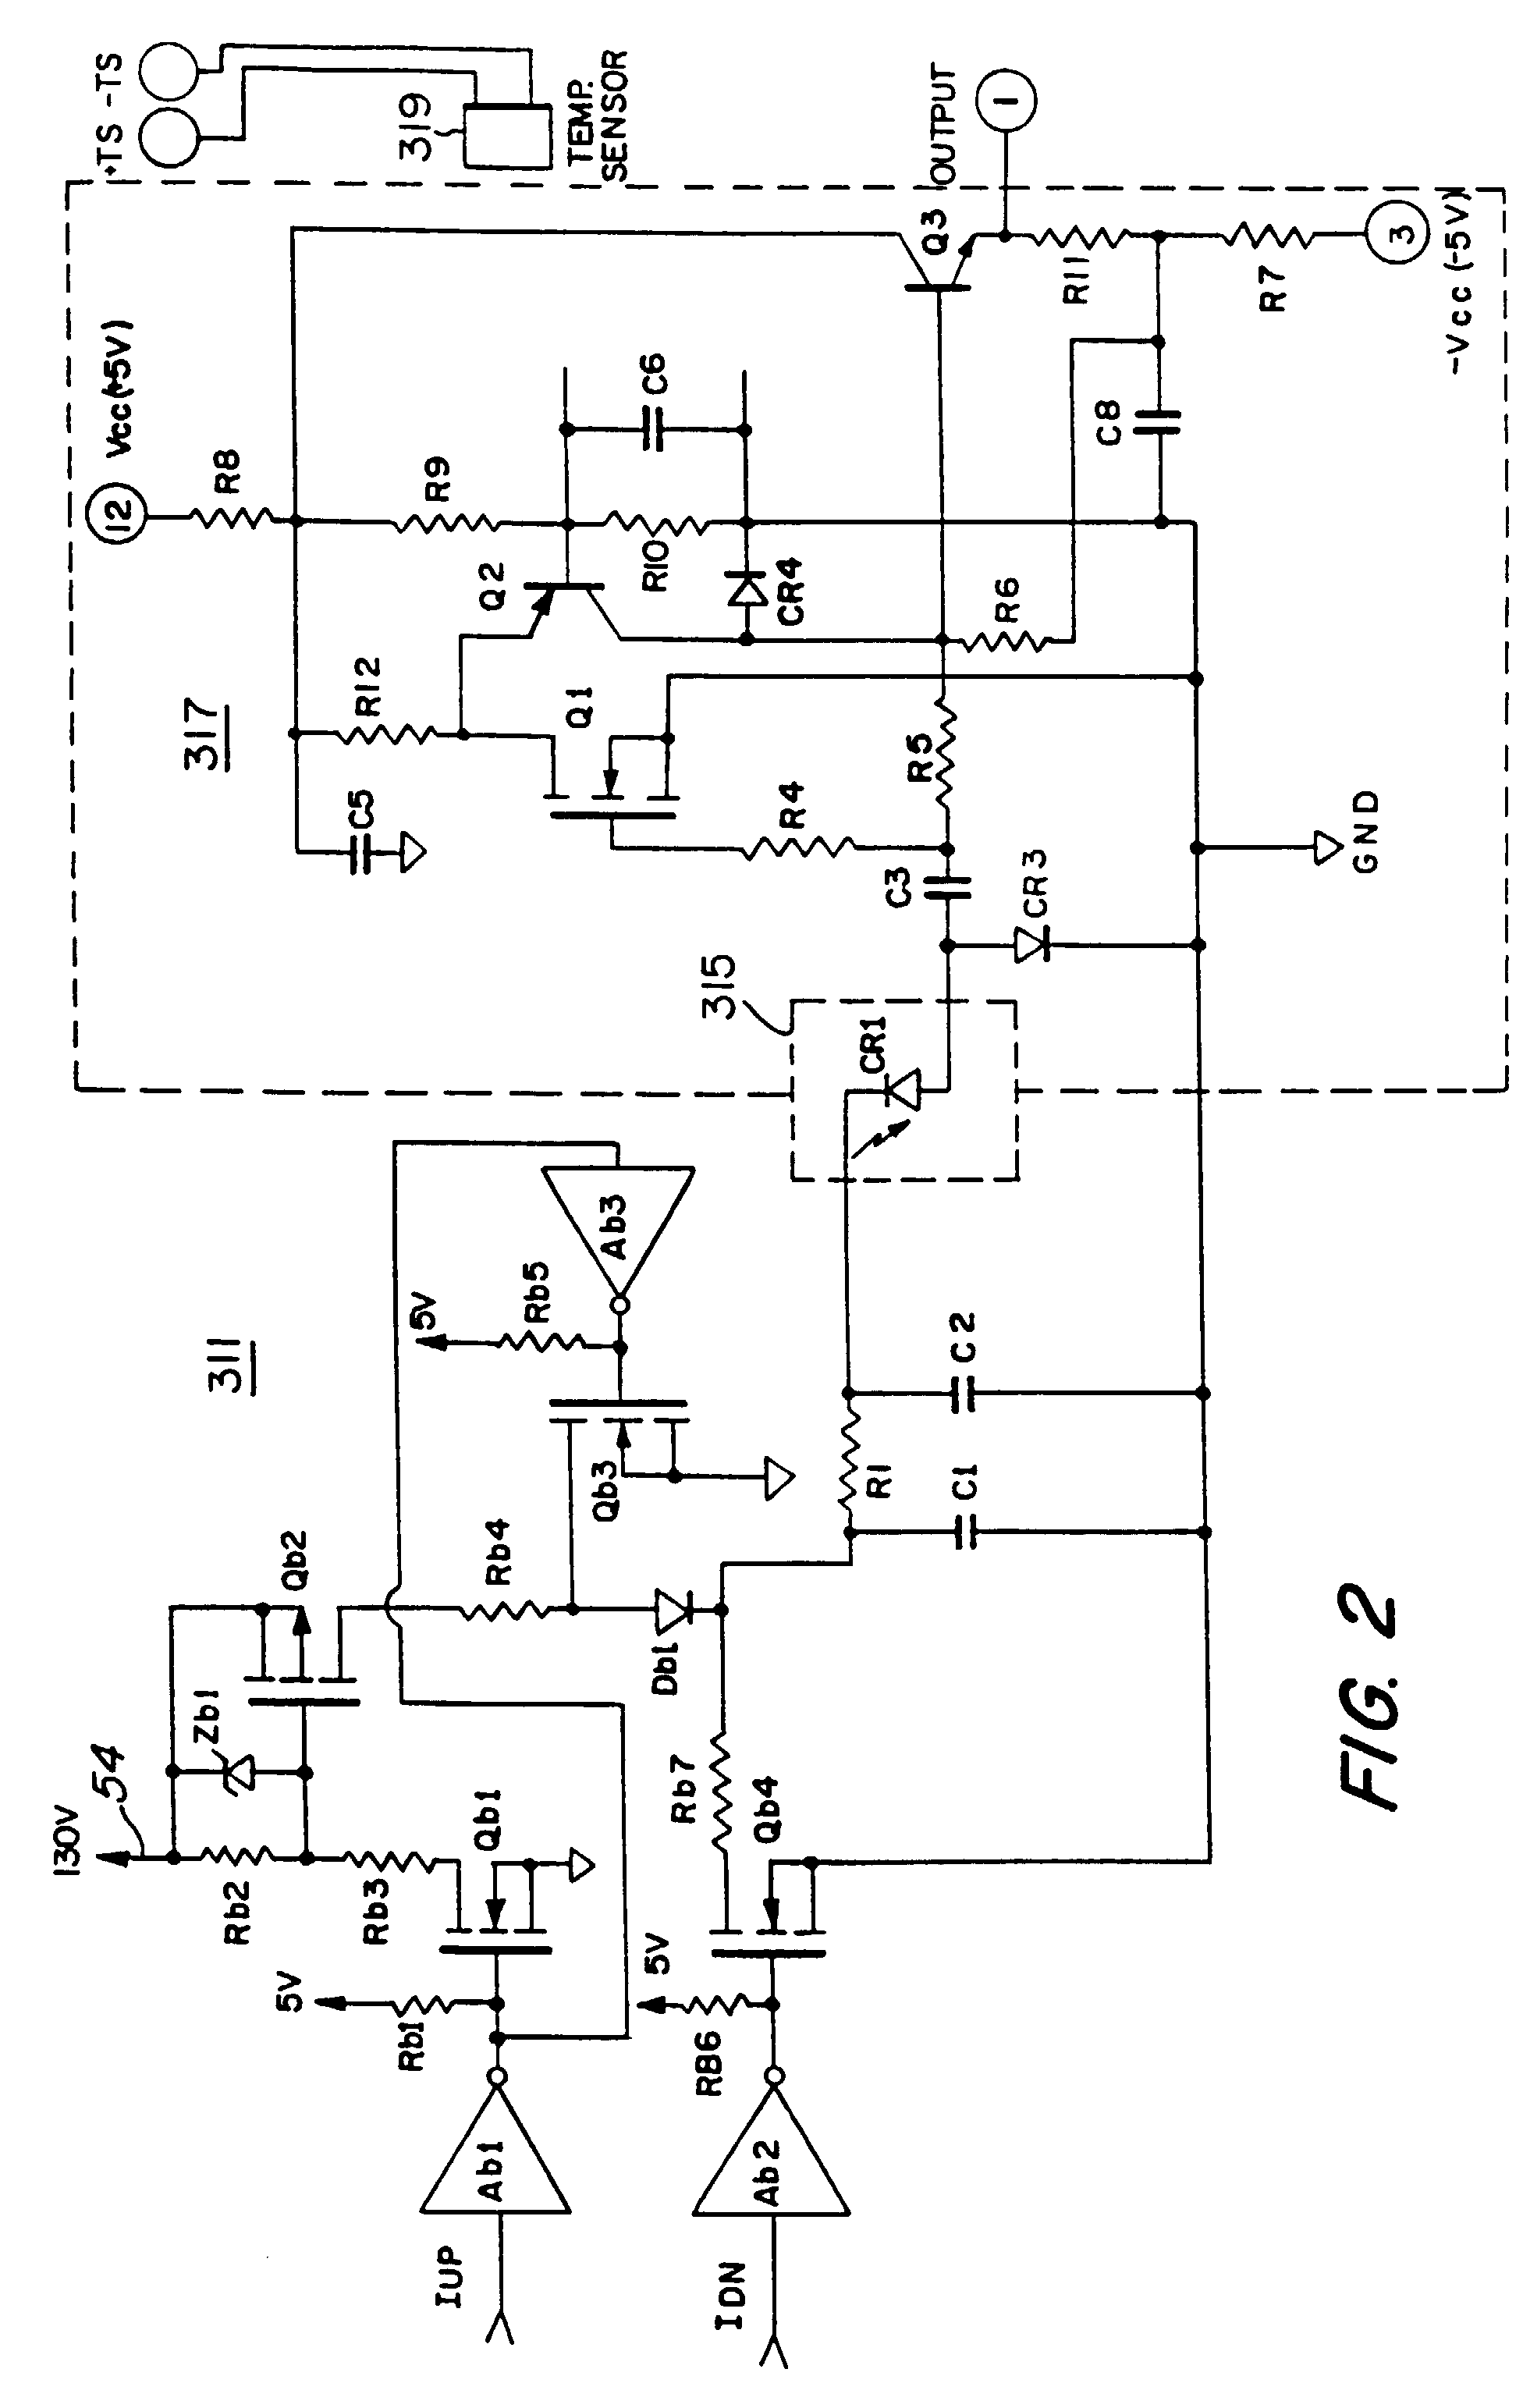 Laser Range Finder Receiver Patent 0757257 The Transimpedance Amplifier Circuit Drawing